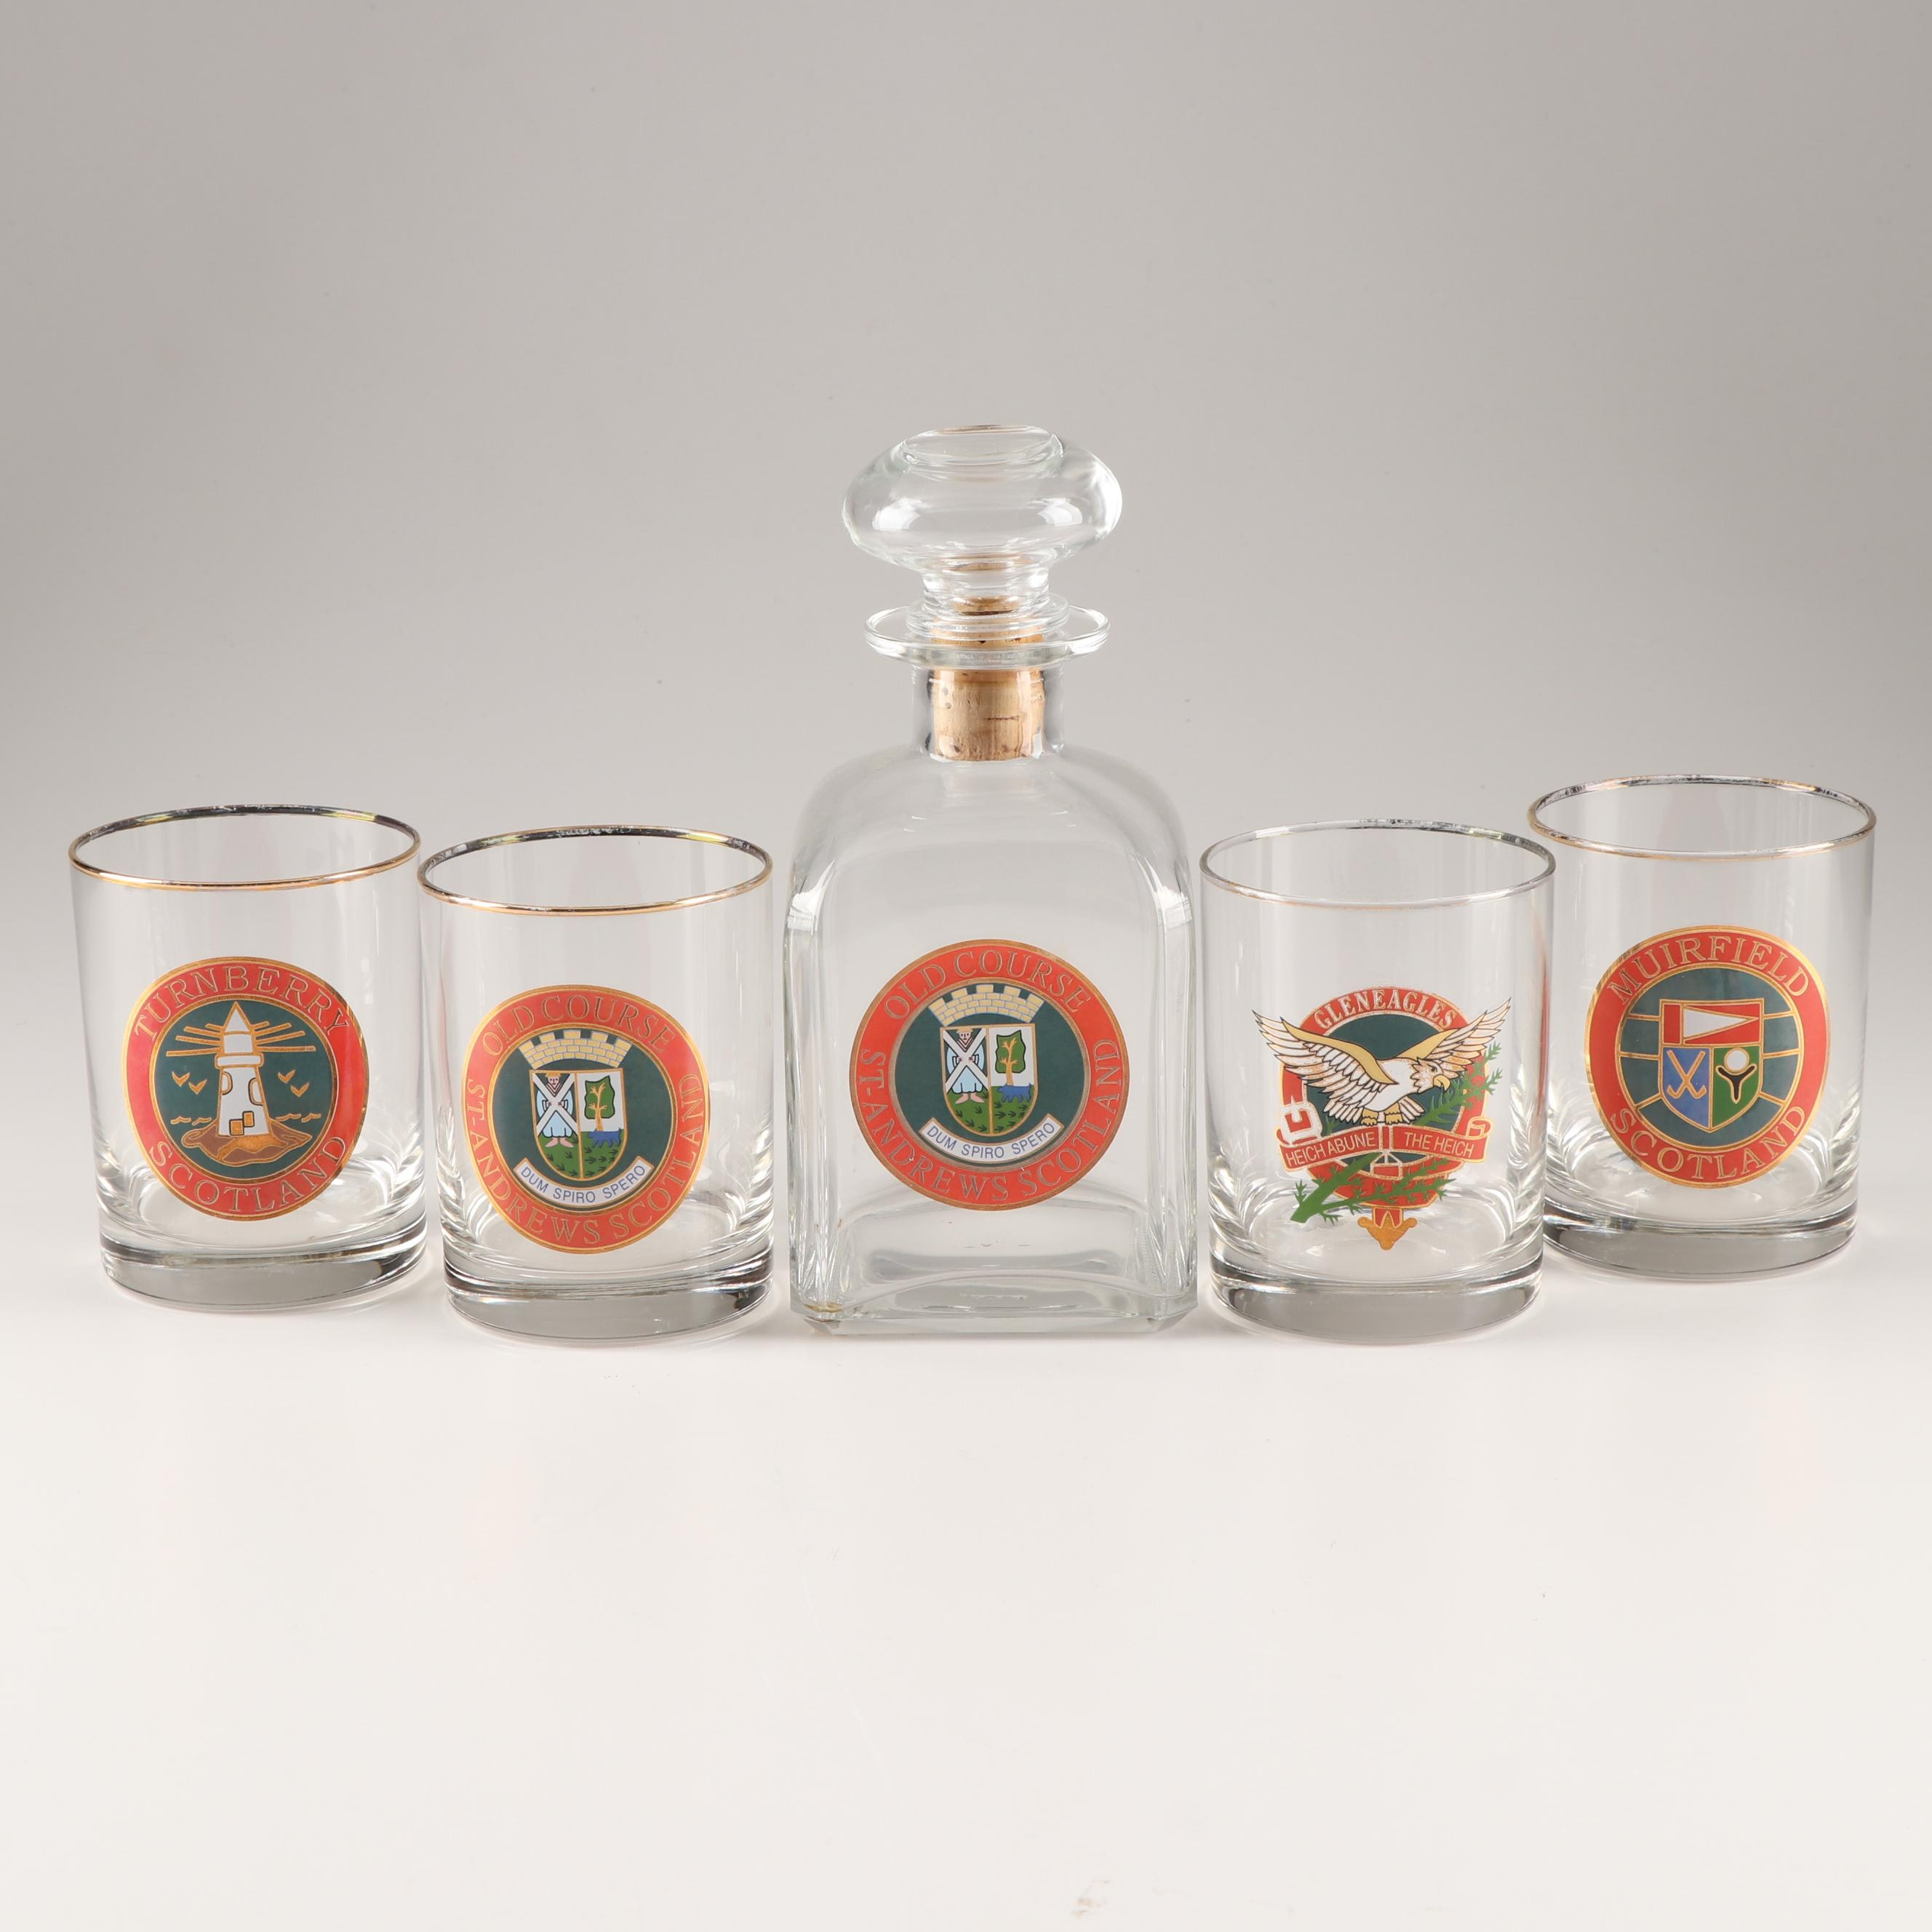 Muirfield Golf Club Whiskey Decanter and Glasses